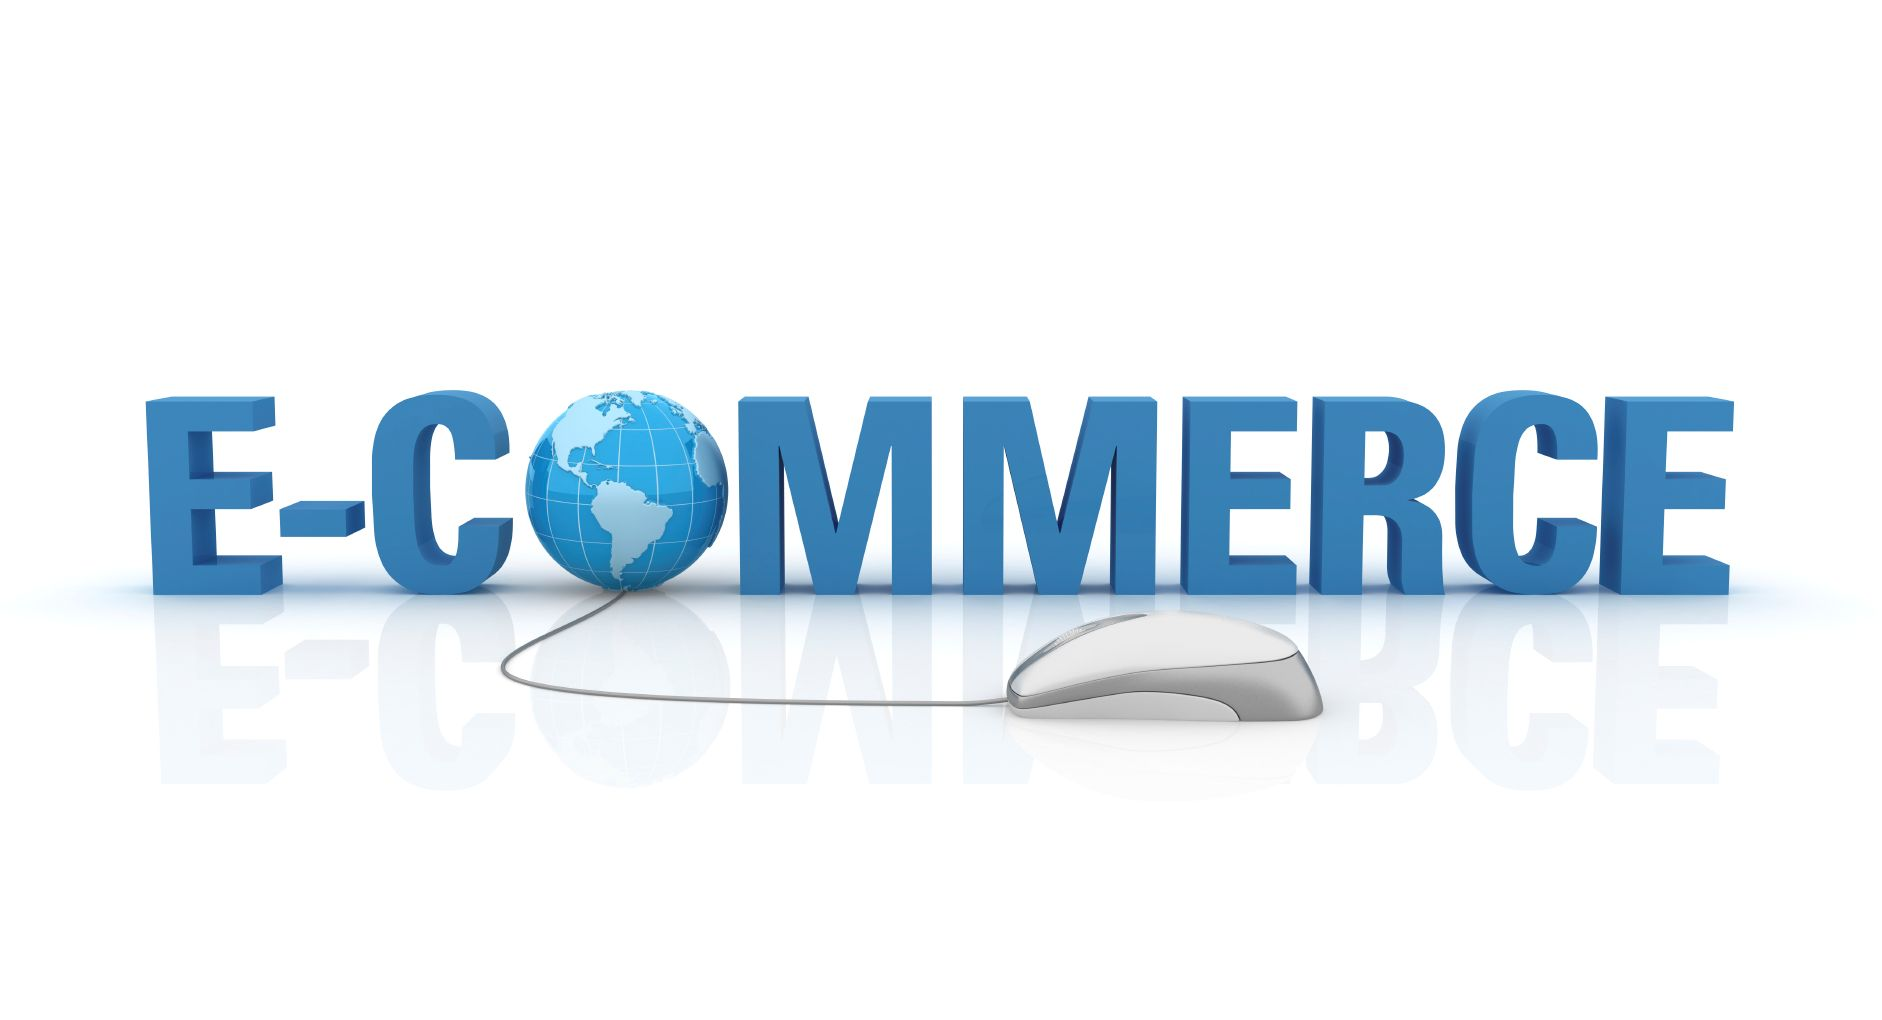 HOW TO MAKE YOUR AVERAGE ECOMMERCE WEBSITE INTO A SUCCESSFUL ONE